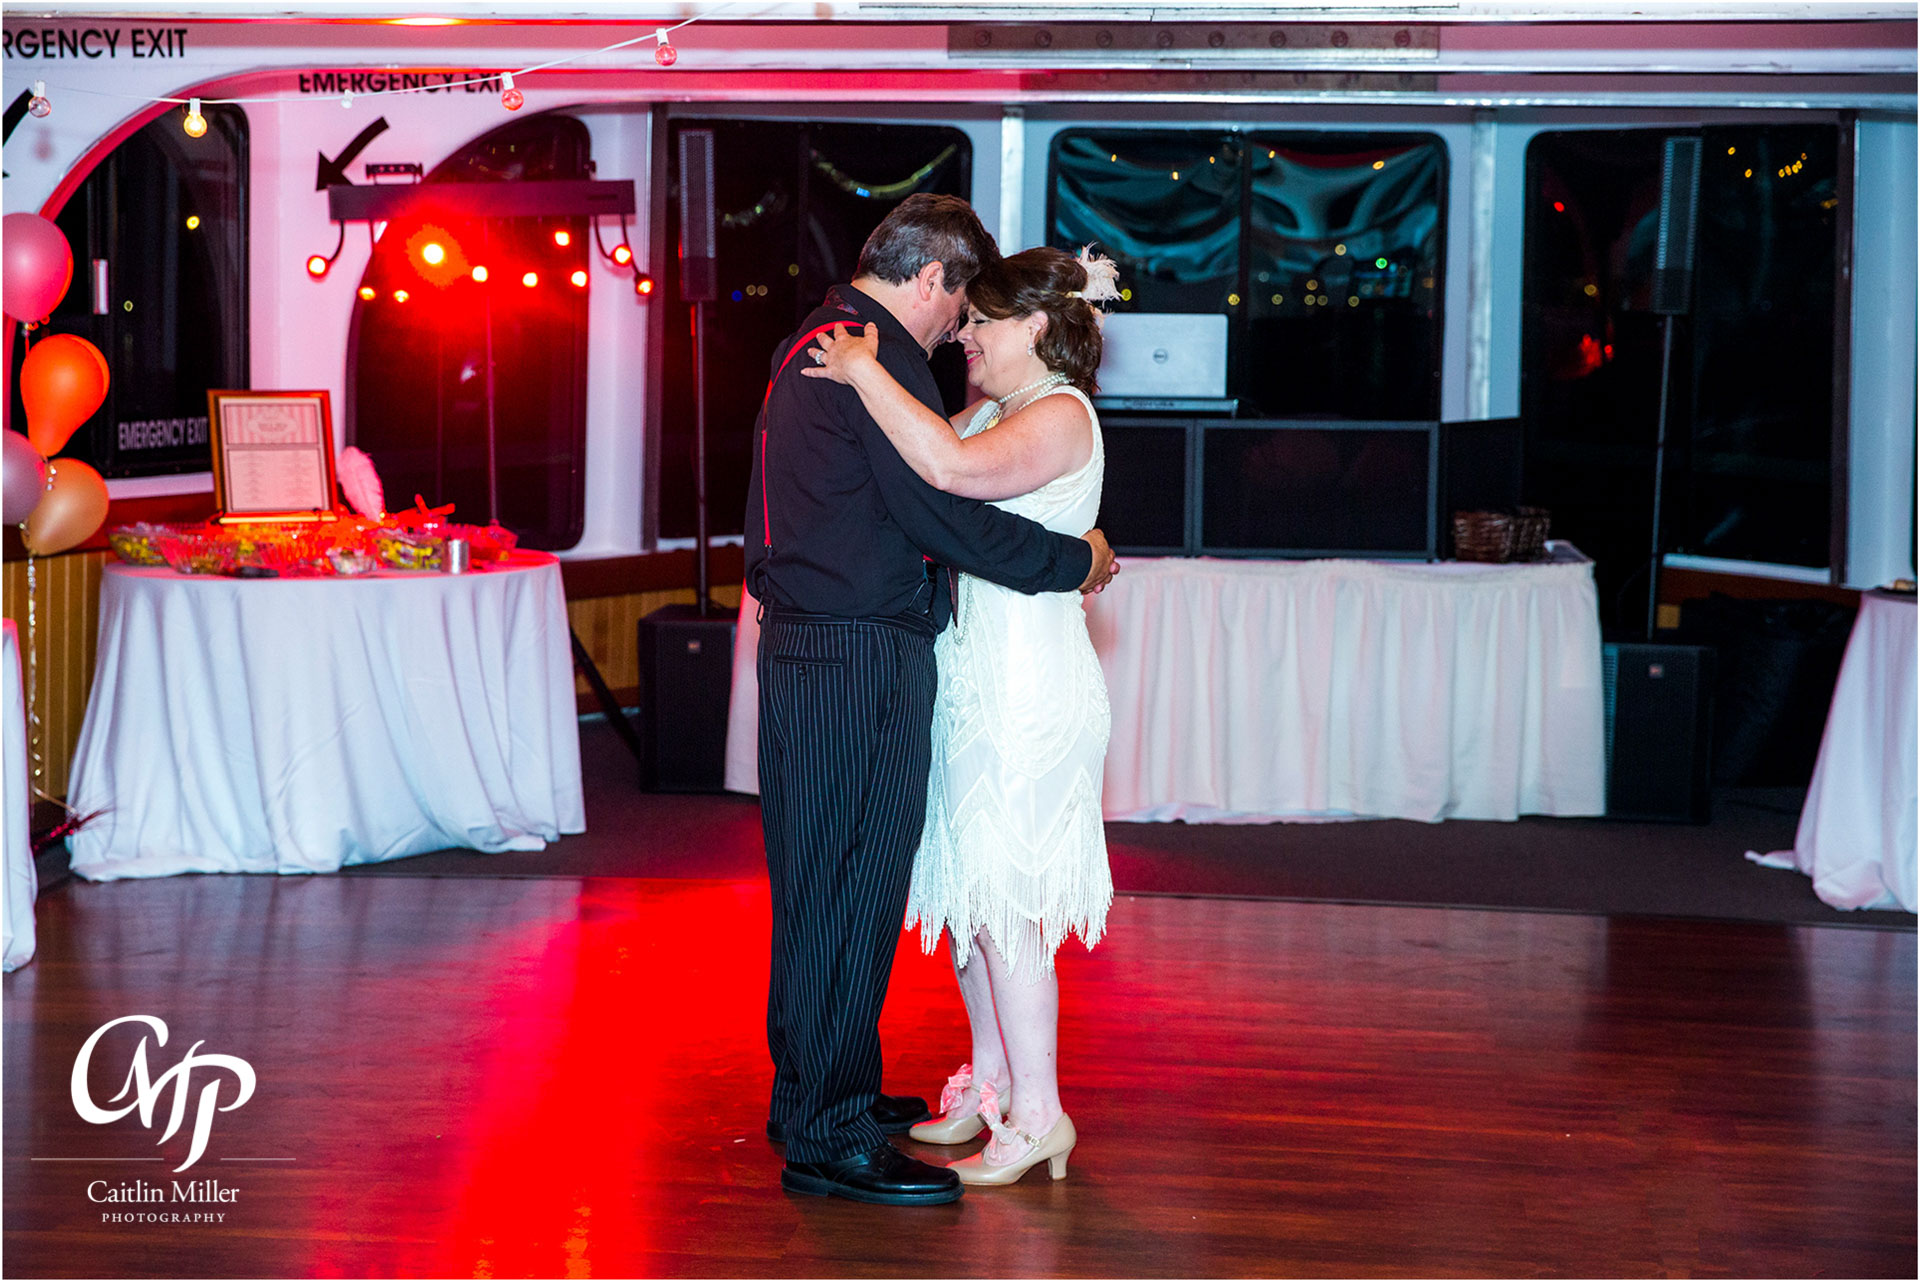 bombard-36.jpg from Jan and Robert's vow renewal on shoreline Cruise's Adirondac Boat on Lake George, NY by Saratoga Wedding Photographer Caitlin Miller Photography. Lake George Wedding Photographer. Stamford wedding photographer. Albany wedding photographer. Shoreline Cruises Wedding Photographer. Saratoga Wedding Photographer